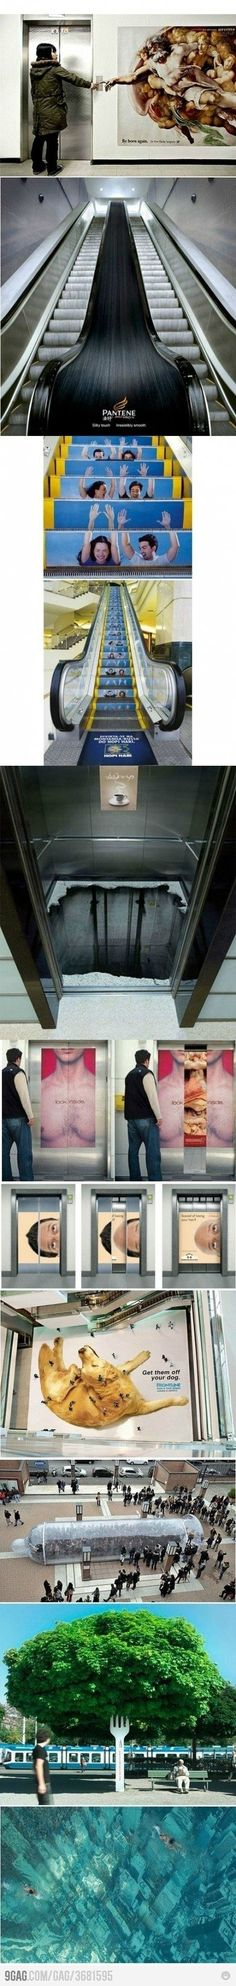 Ambient ads.  www.arcreactions.com